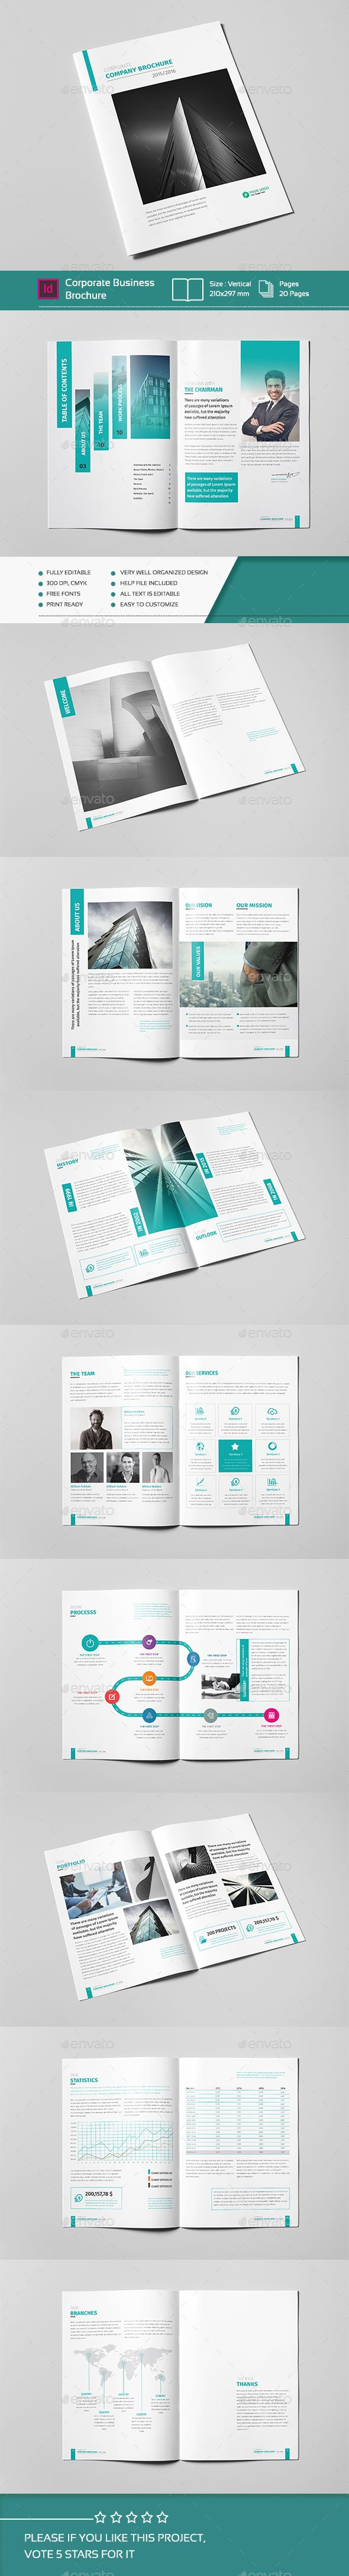 Corporate Business Brochure 20 Pages A4 Template InDesign INDD. Download here: http://graphicriver.net/item/corporate-business-brochure-20-pages-a4/14636125?ref=ksioks